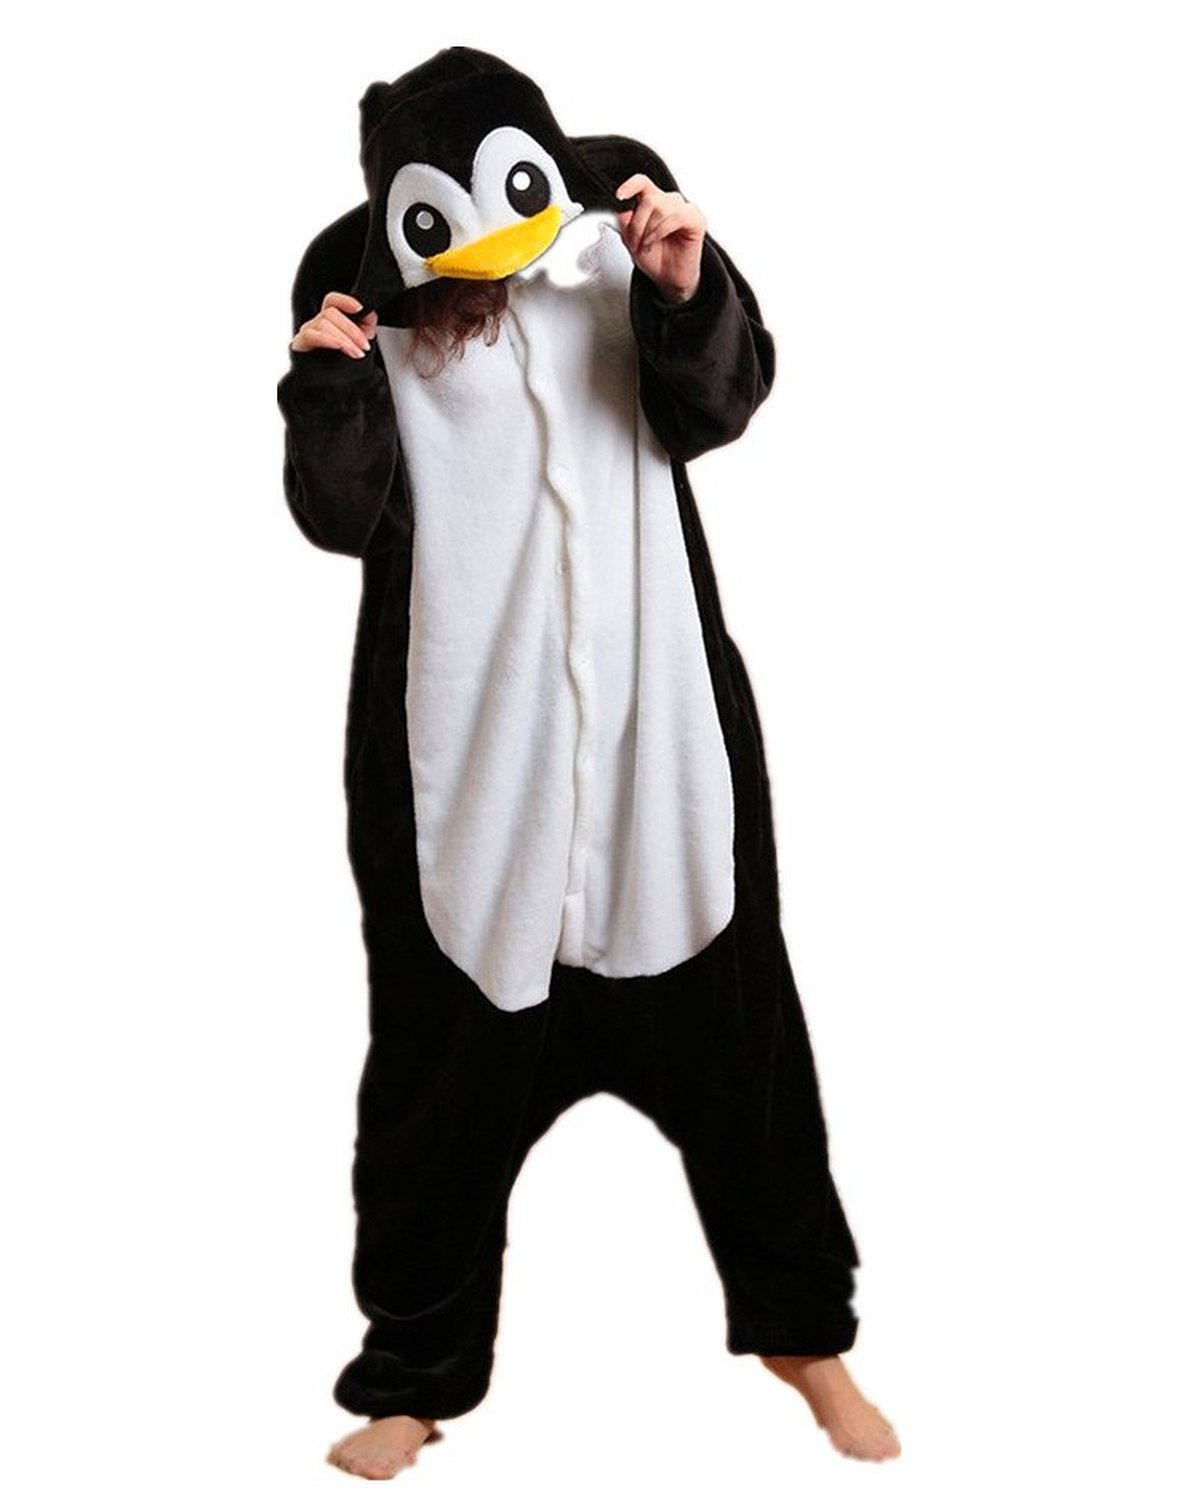 Manchot animal pyjama cospaly party fleece costume deguisement adulte unisexe (m(hauteur:160